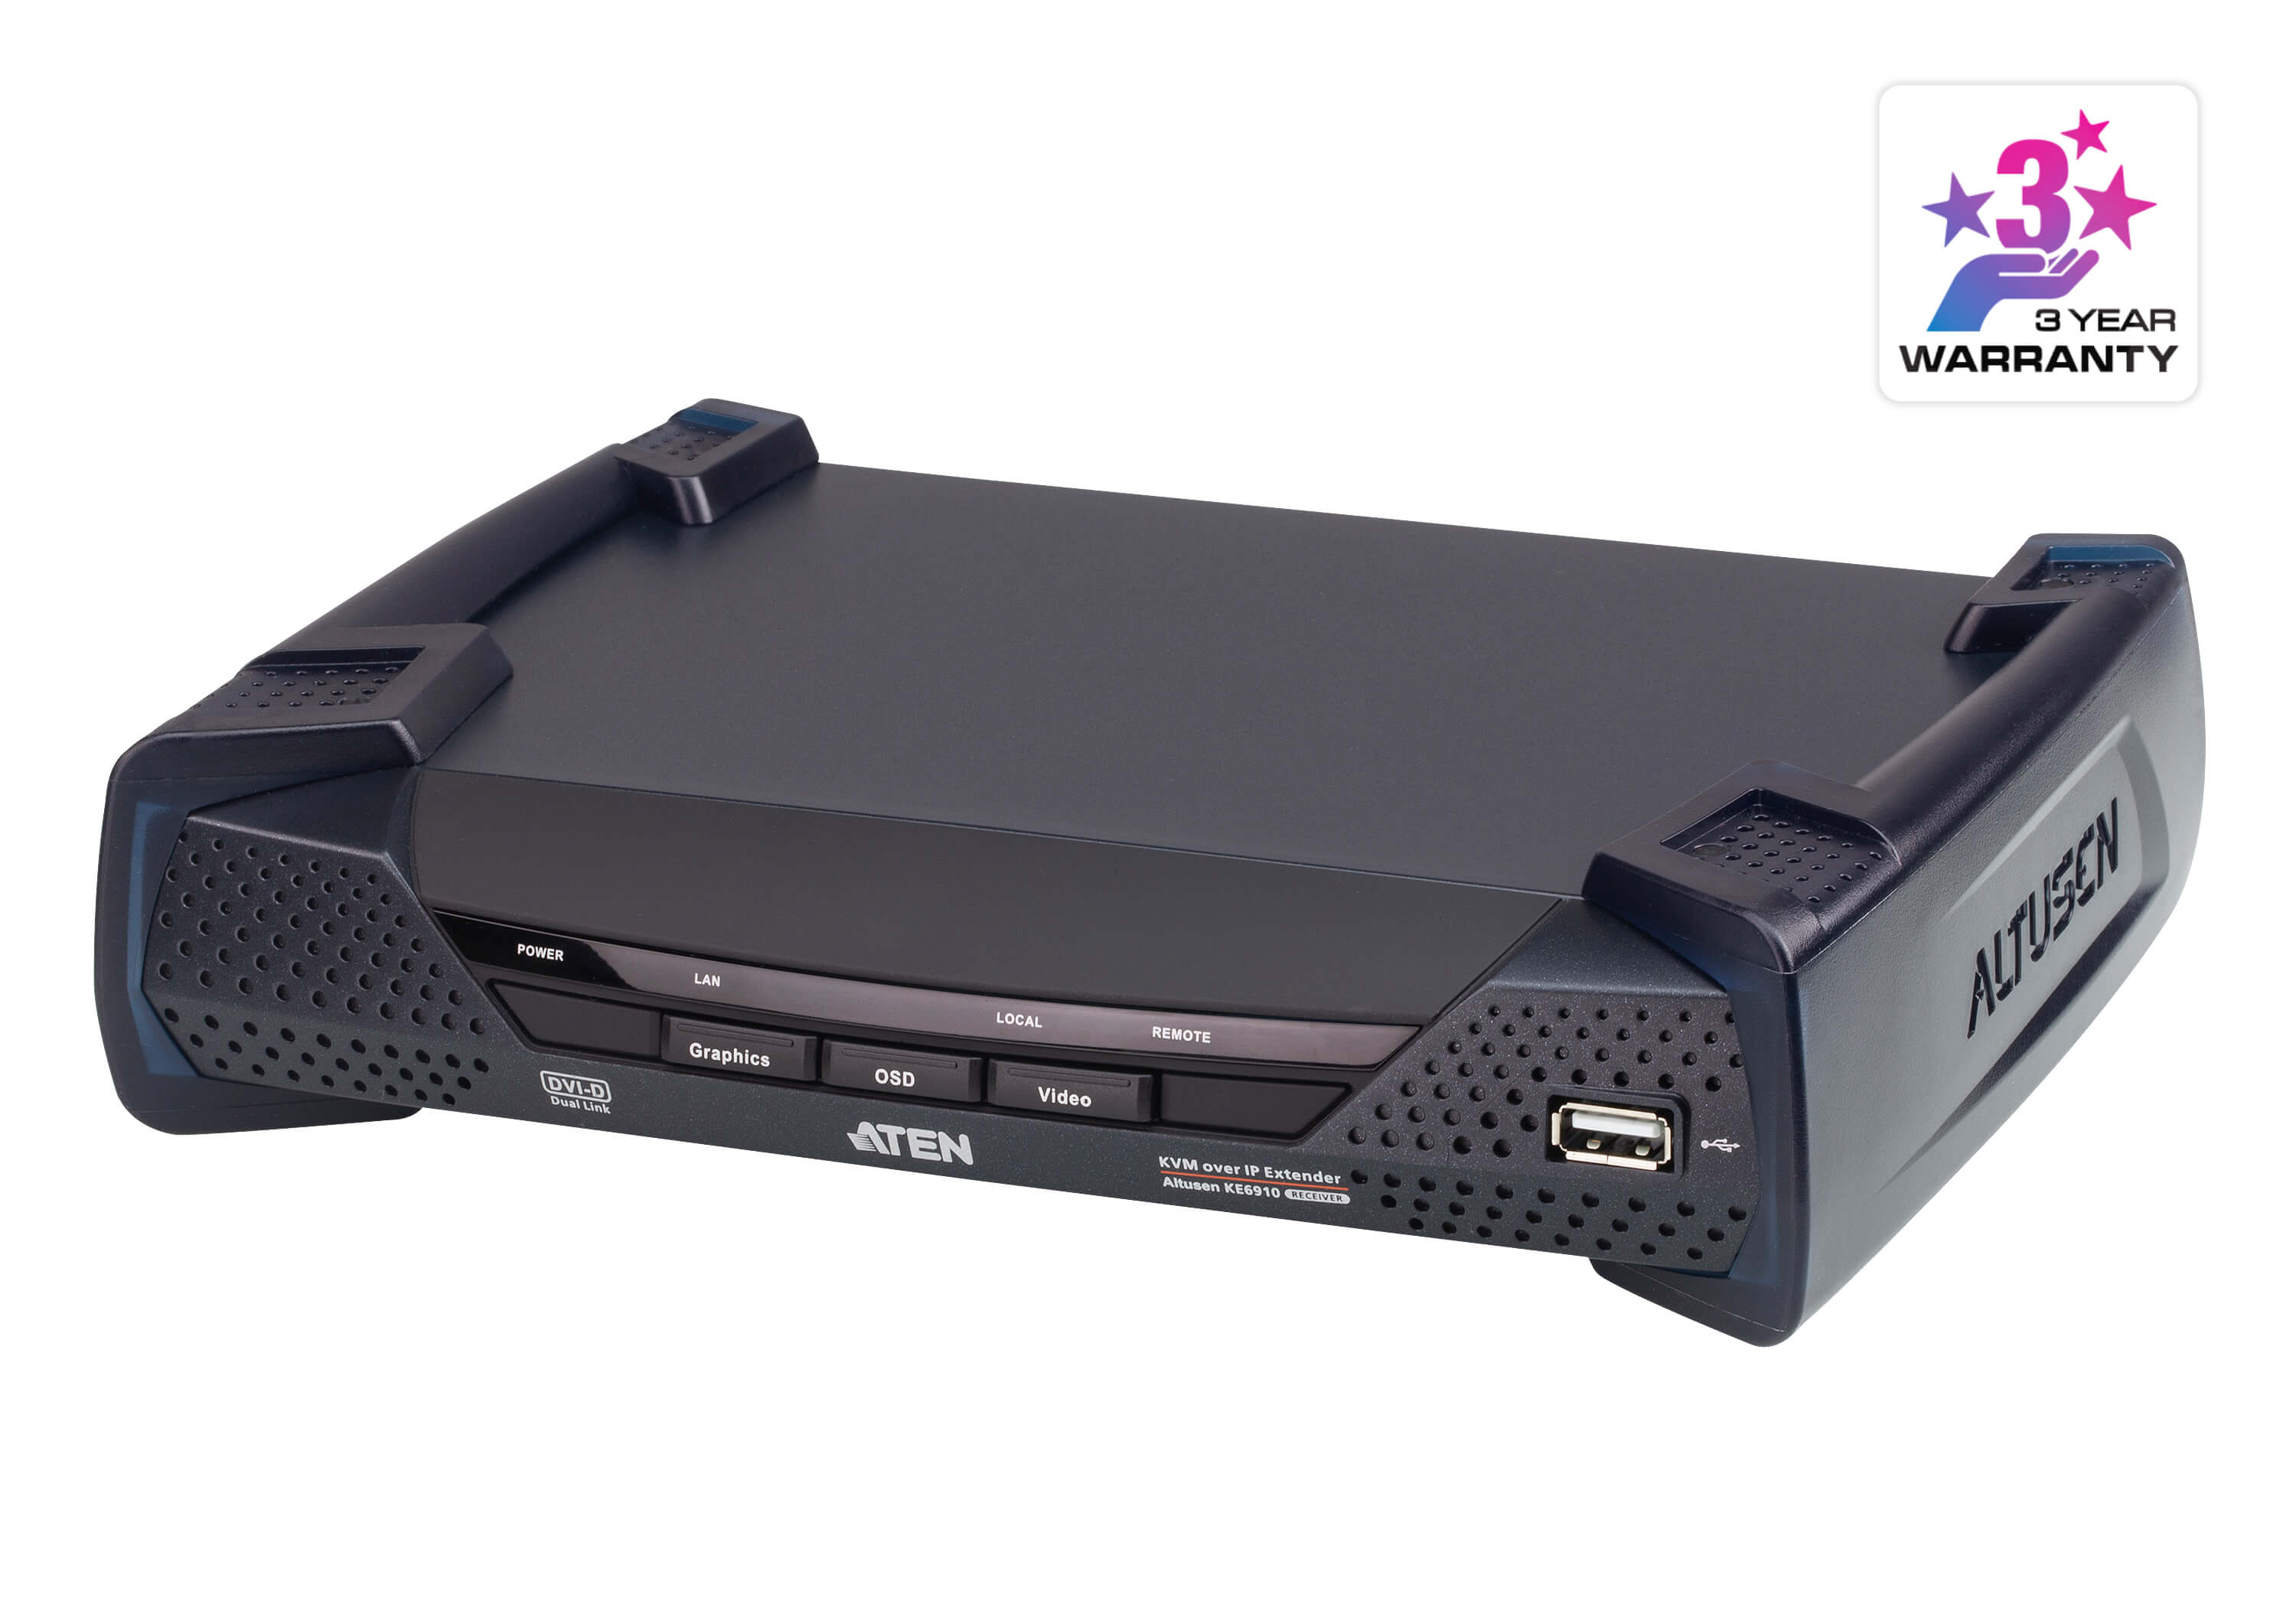 Aten DVI Dual Link KVM over IP Transmitter with Dual DC Power, supports up to 2560 x 1600 @ 60 Hz, USB and 3.5mm Audio input and Output